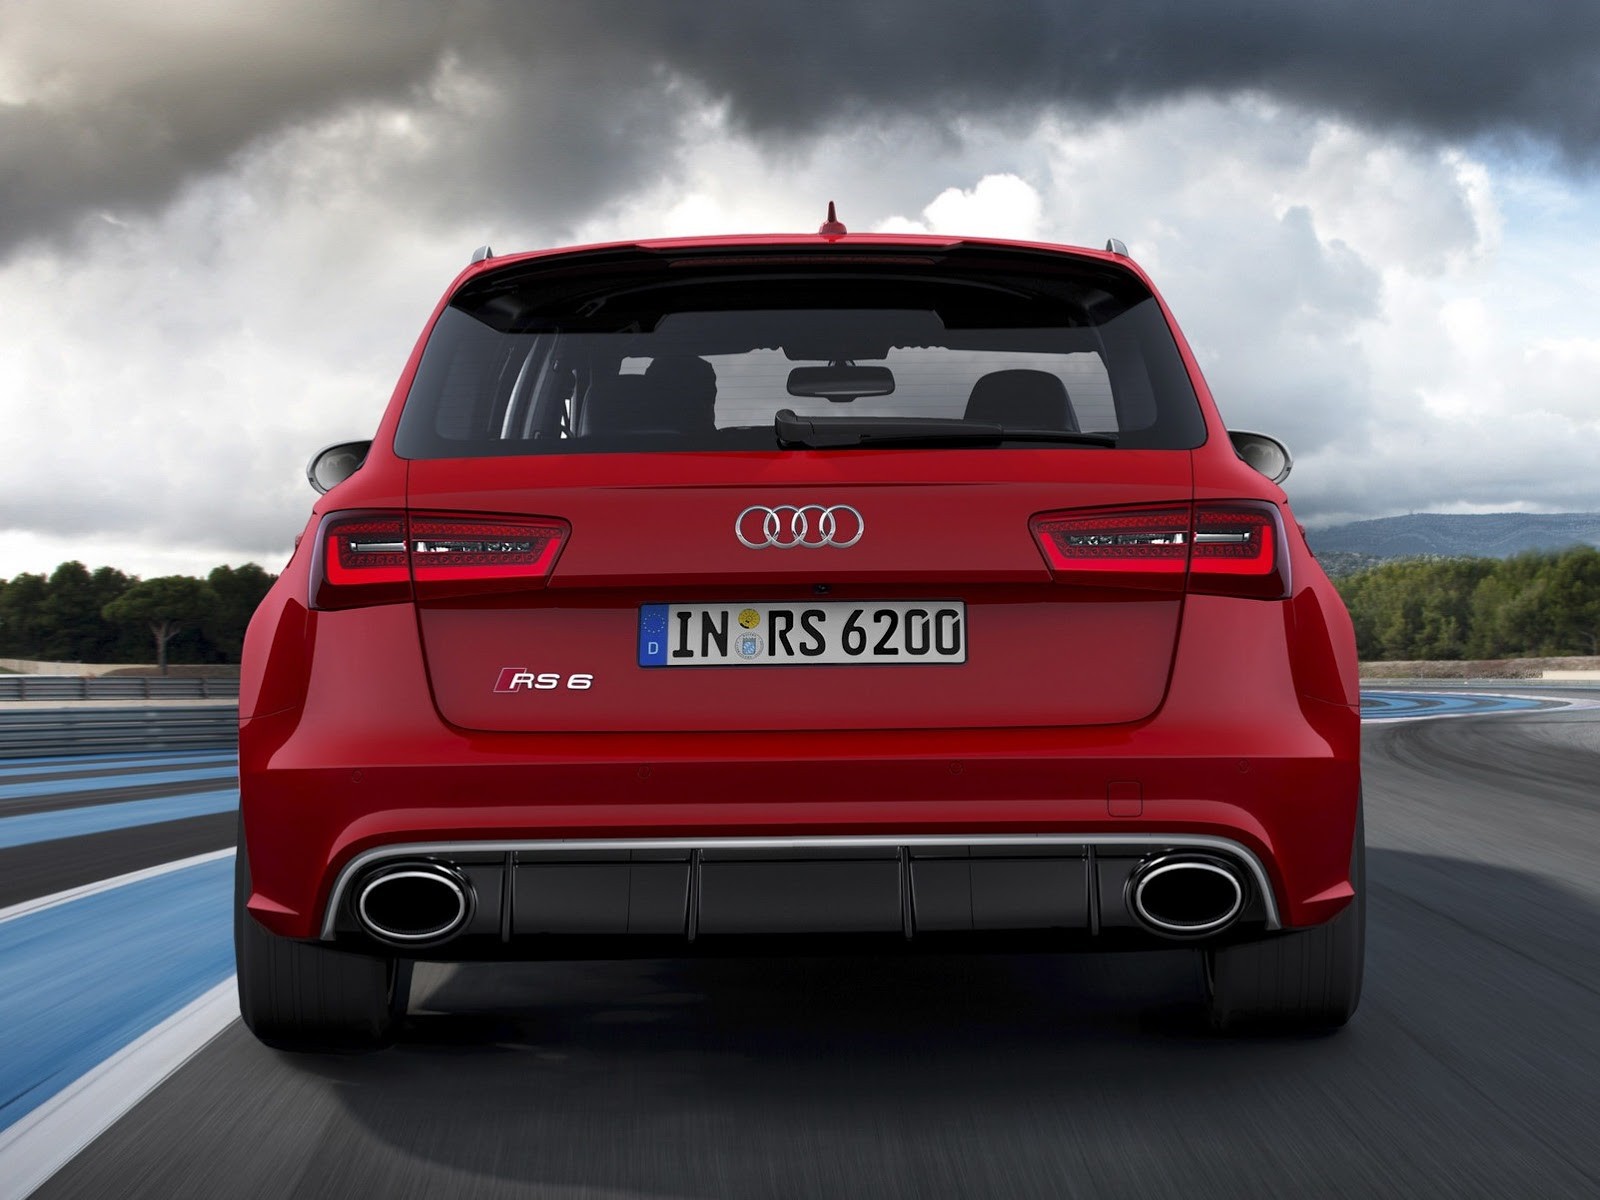 audi rs6 price avant overseas related news performance wagons Free Download Image Of